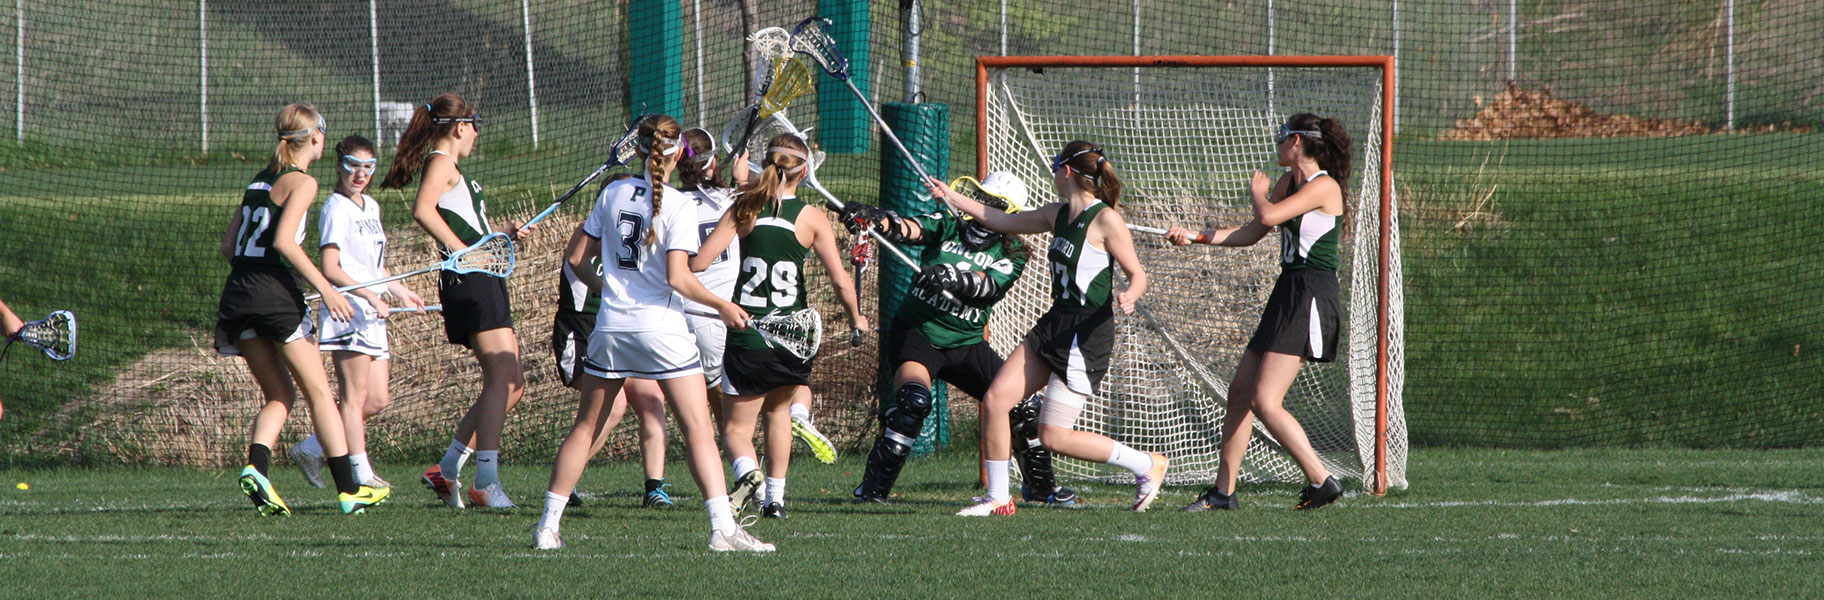 Girls Varsity Lacrosse at Concord Academy